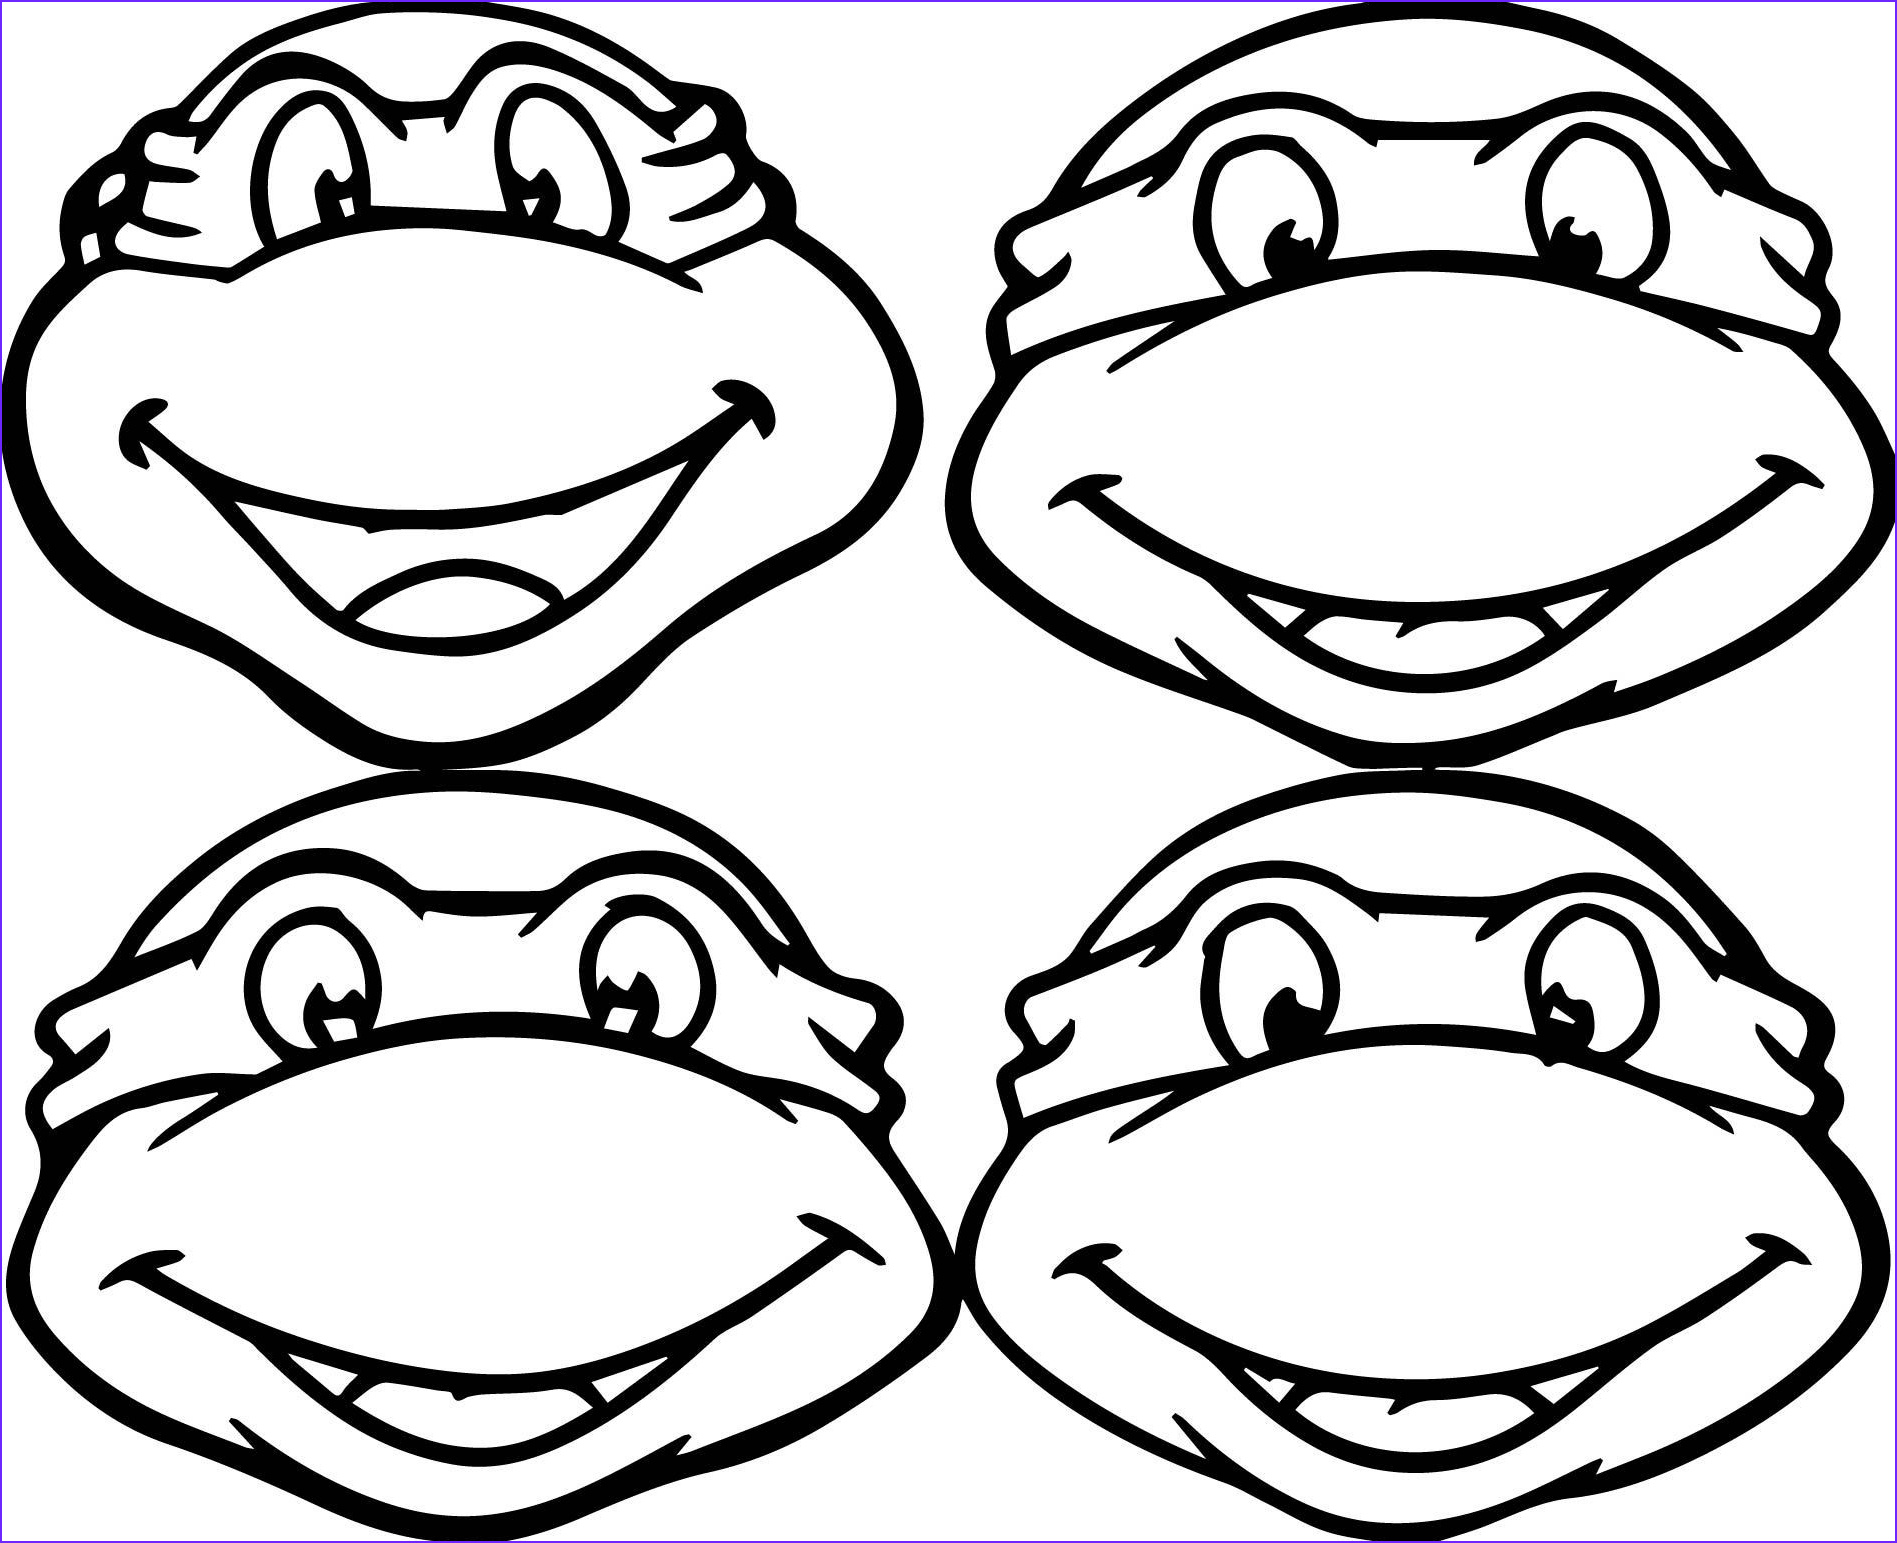 Turtle Coloring Book Cool Collection Teenage Mutant Ninja Turtles Coloring Pages Best